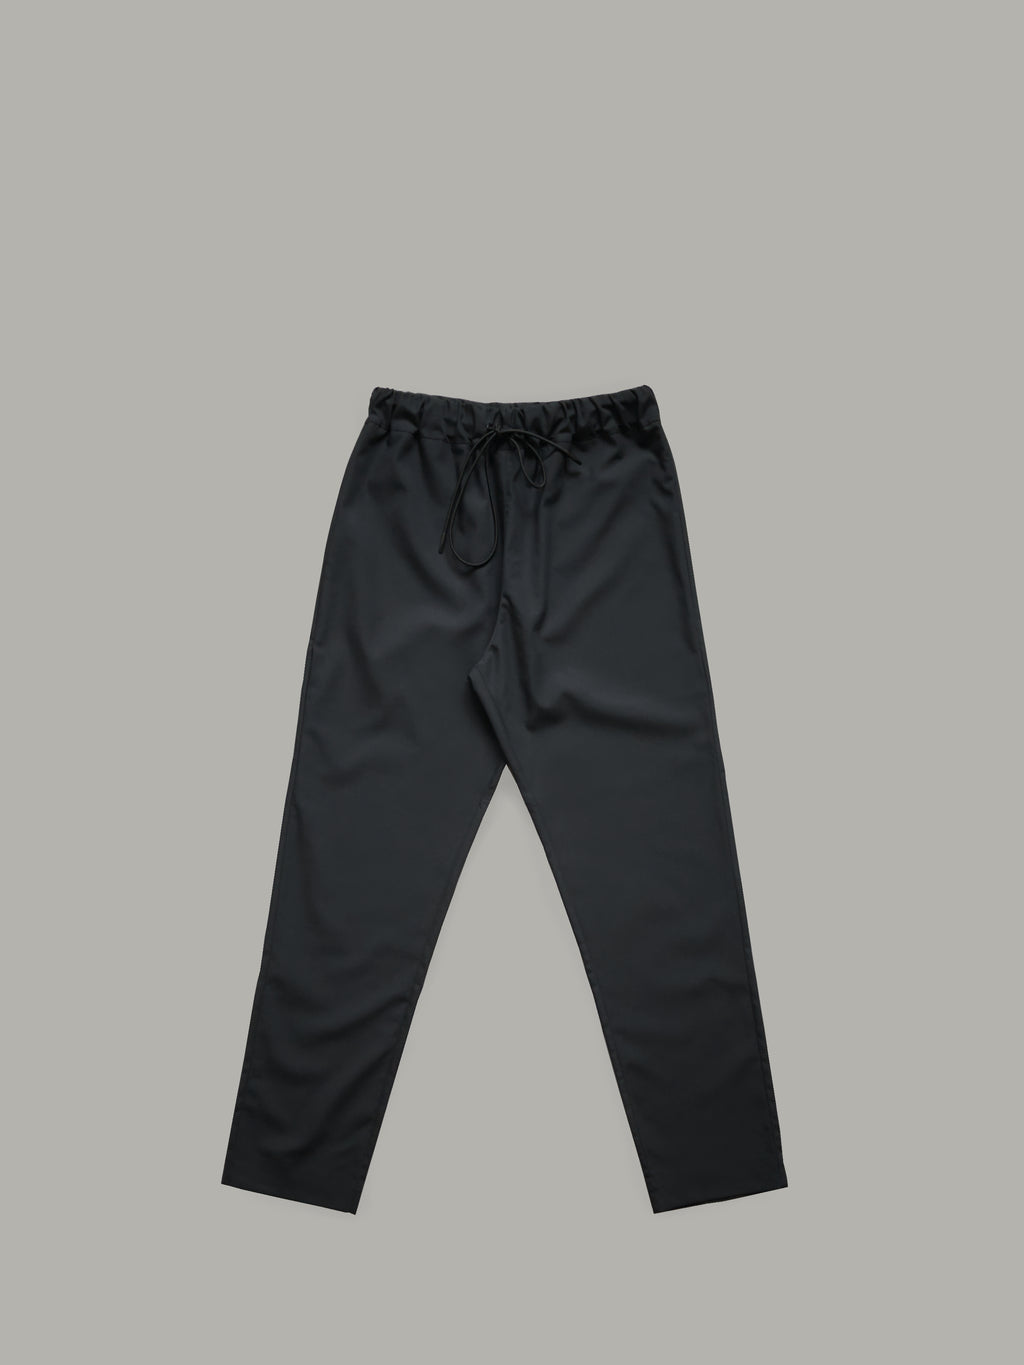 LIGHTWEIGHT COTTON TROUSERS WITH ADJUSTABLE DRAWSTRING